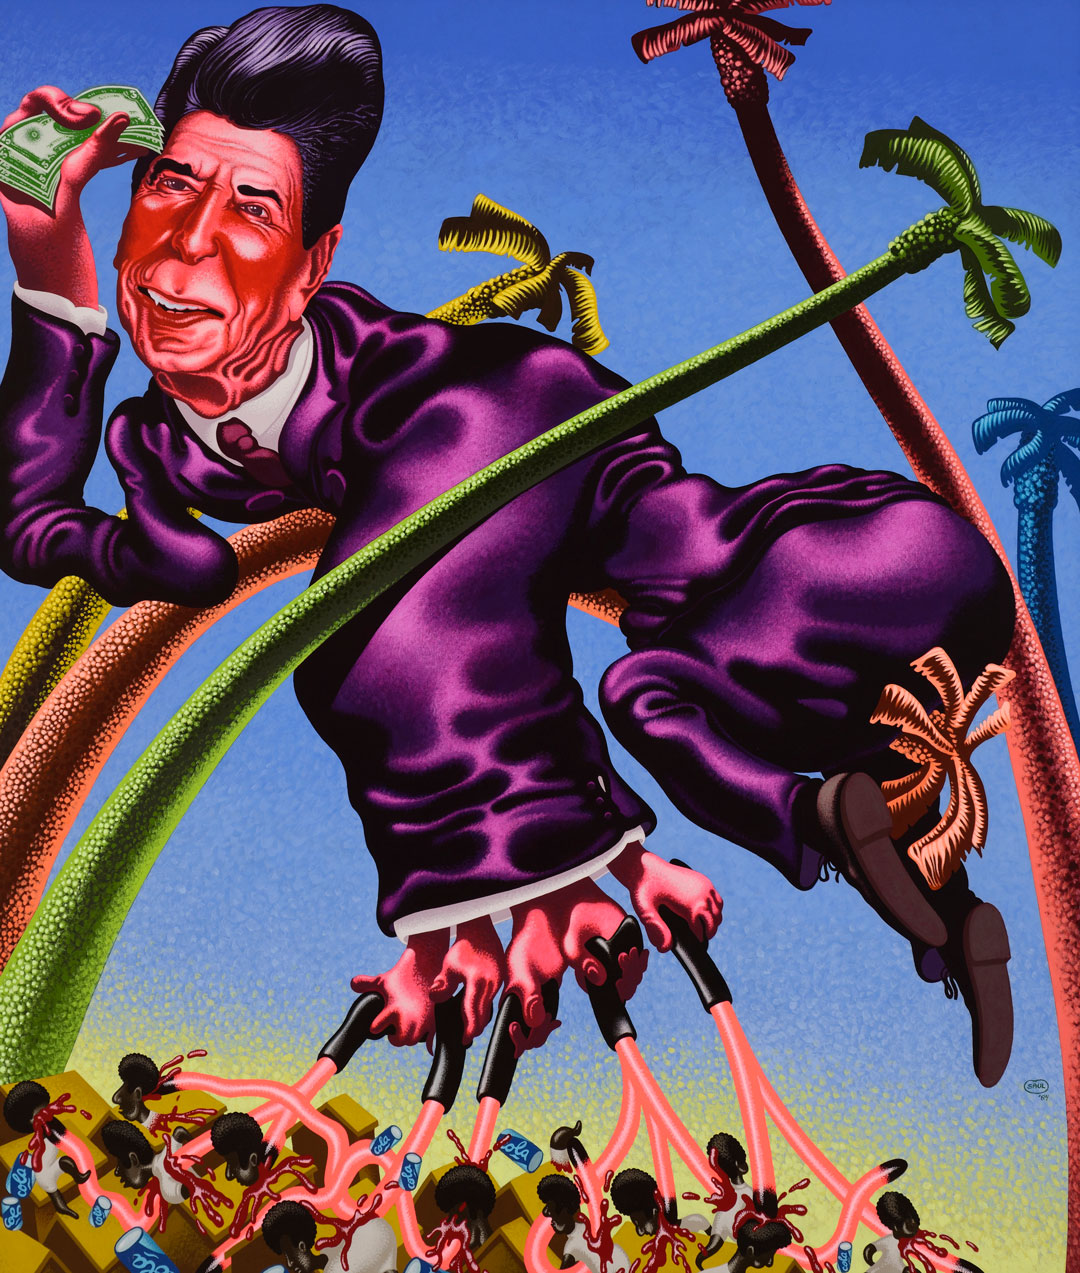 Peter Saul, Ronald Reagan in Grenada, 1984. Acrylic on canvas, 82 1/2 x 71 in (209.6 x 180.3 cm). Hall Collection. Courtesy Hall Art Foundation. Photo: Jeffrey Nintzel